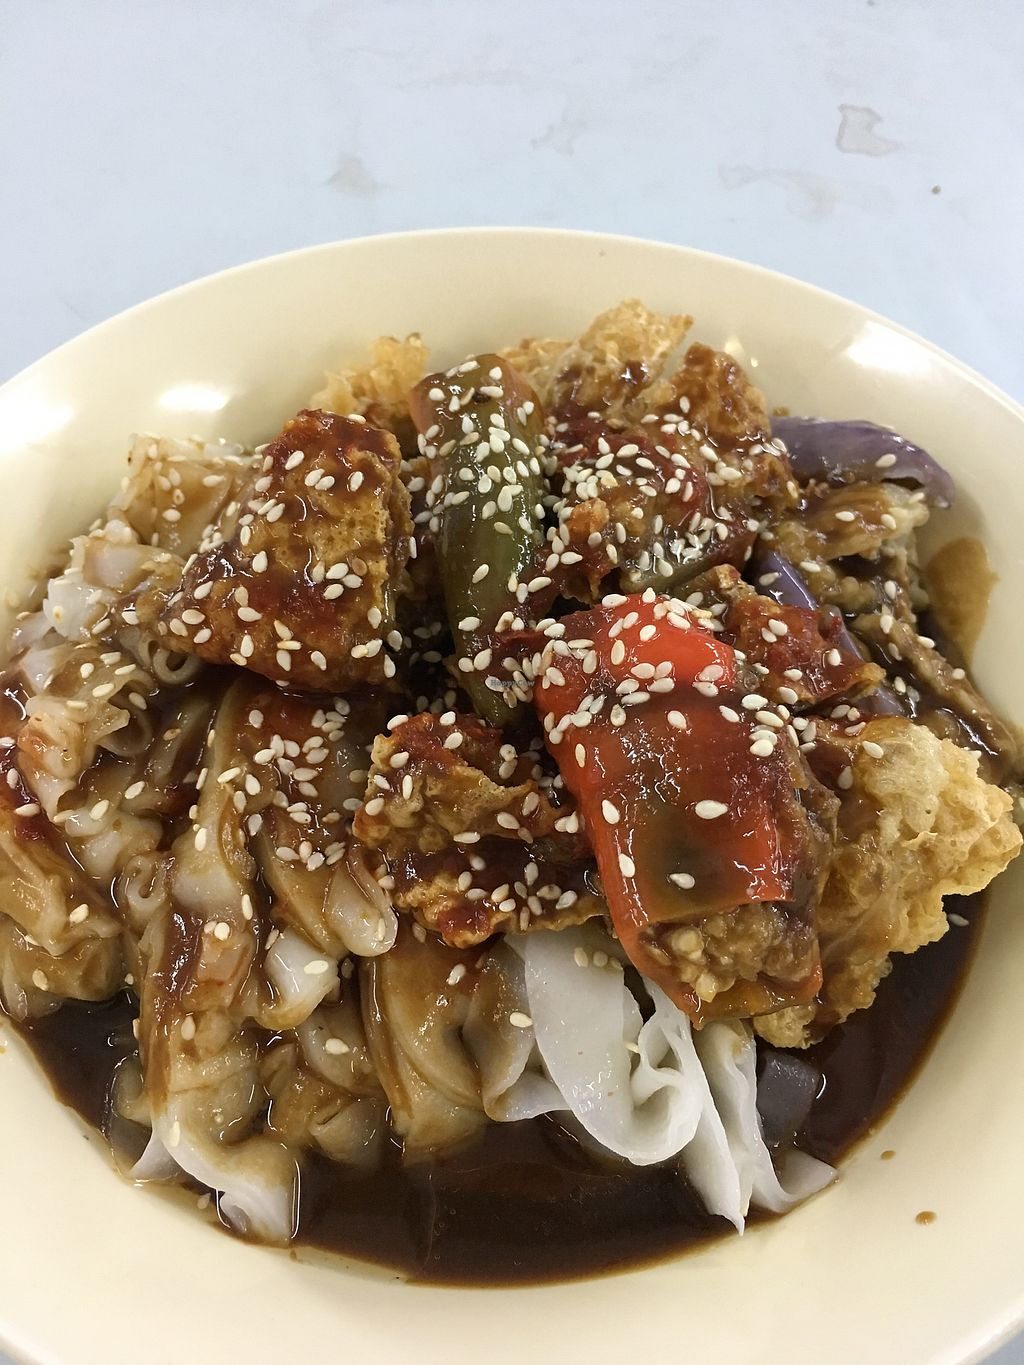 """Photo of Blue Boy Vegetarian Food Centre Stall  by <a href=""""/members/profile/pauldub"""">pauldub</a> <br/>Chee cheong fun (flat rice noodles with sesame hoisin sauce, fried tofu skin, stuffed chilli and eggplant) <br/> March 22, 2018  - <a href='/contact/abuse/image/6111/374452'>Report</a>"""